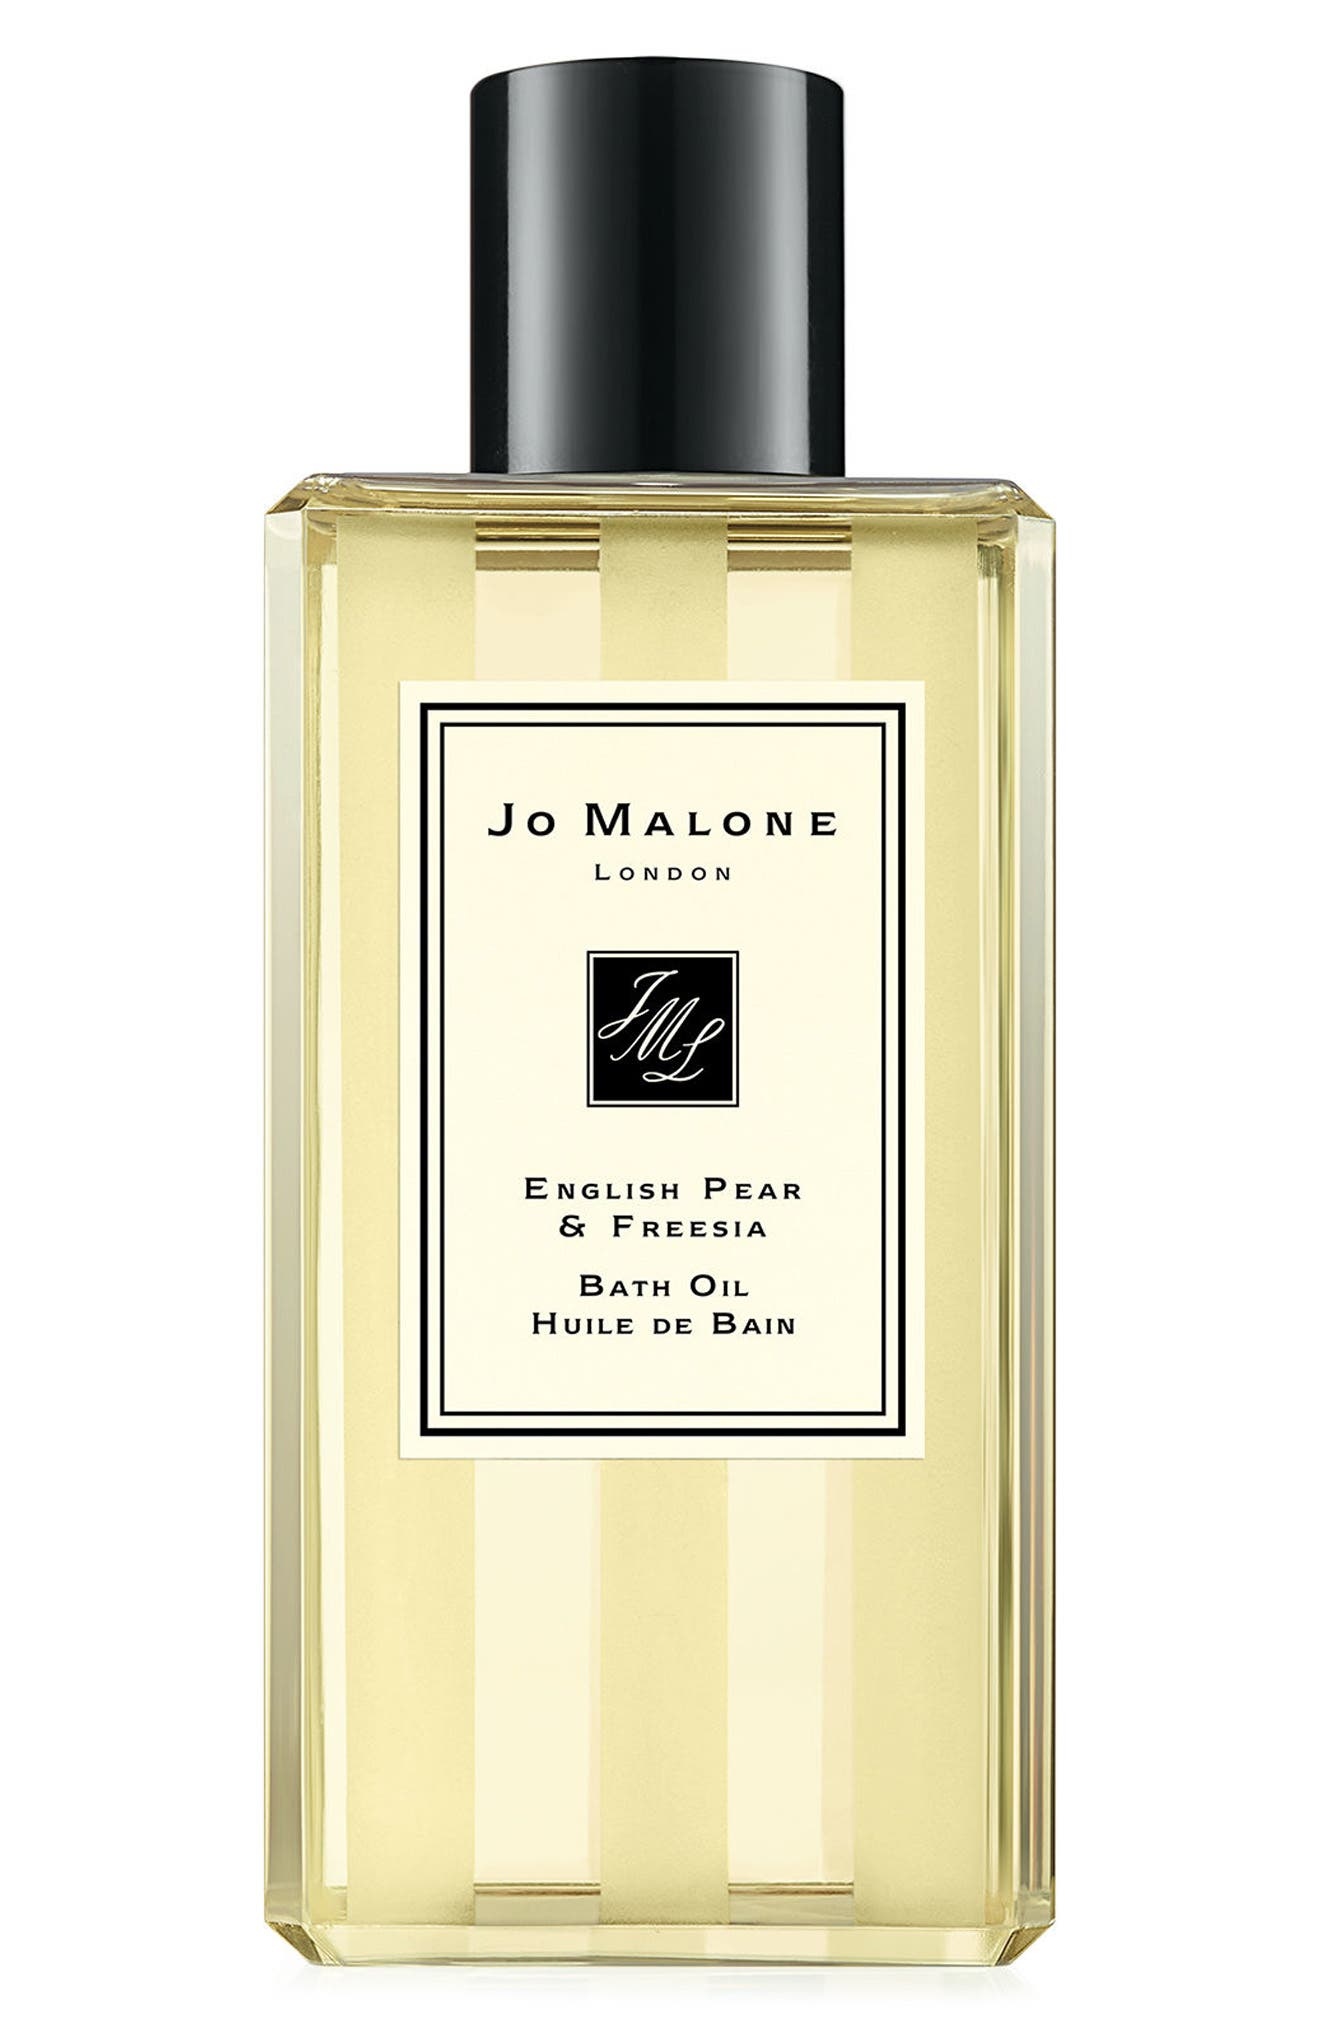 Jo Malone London™ English Pear & Freesia Bath Oil